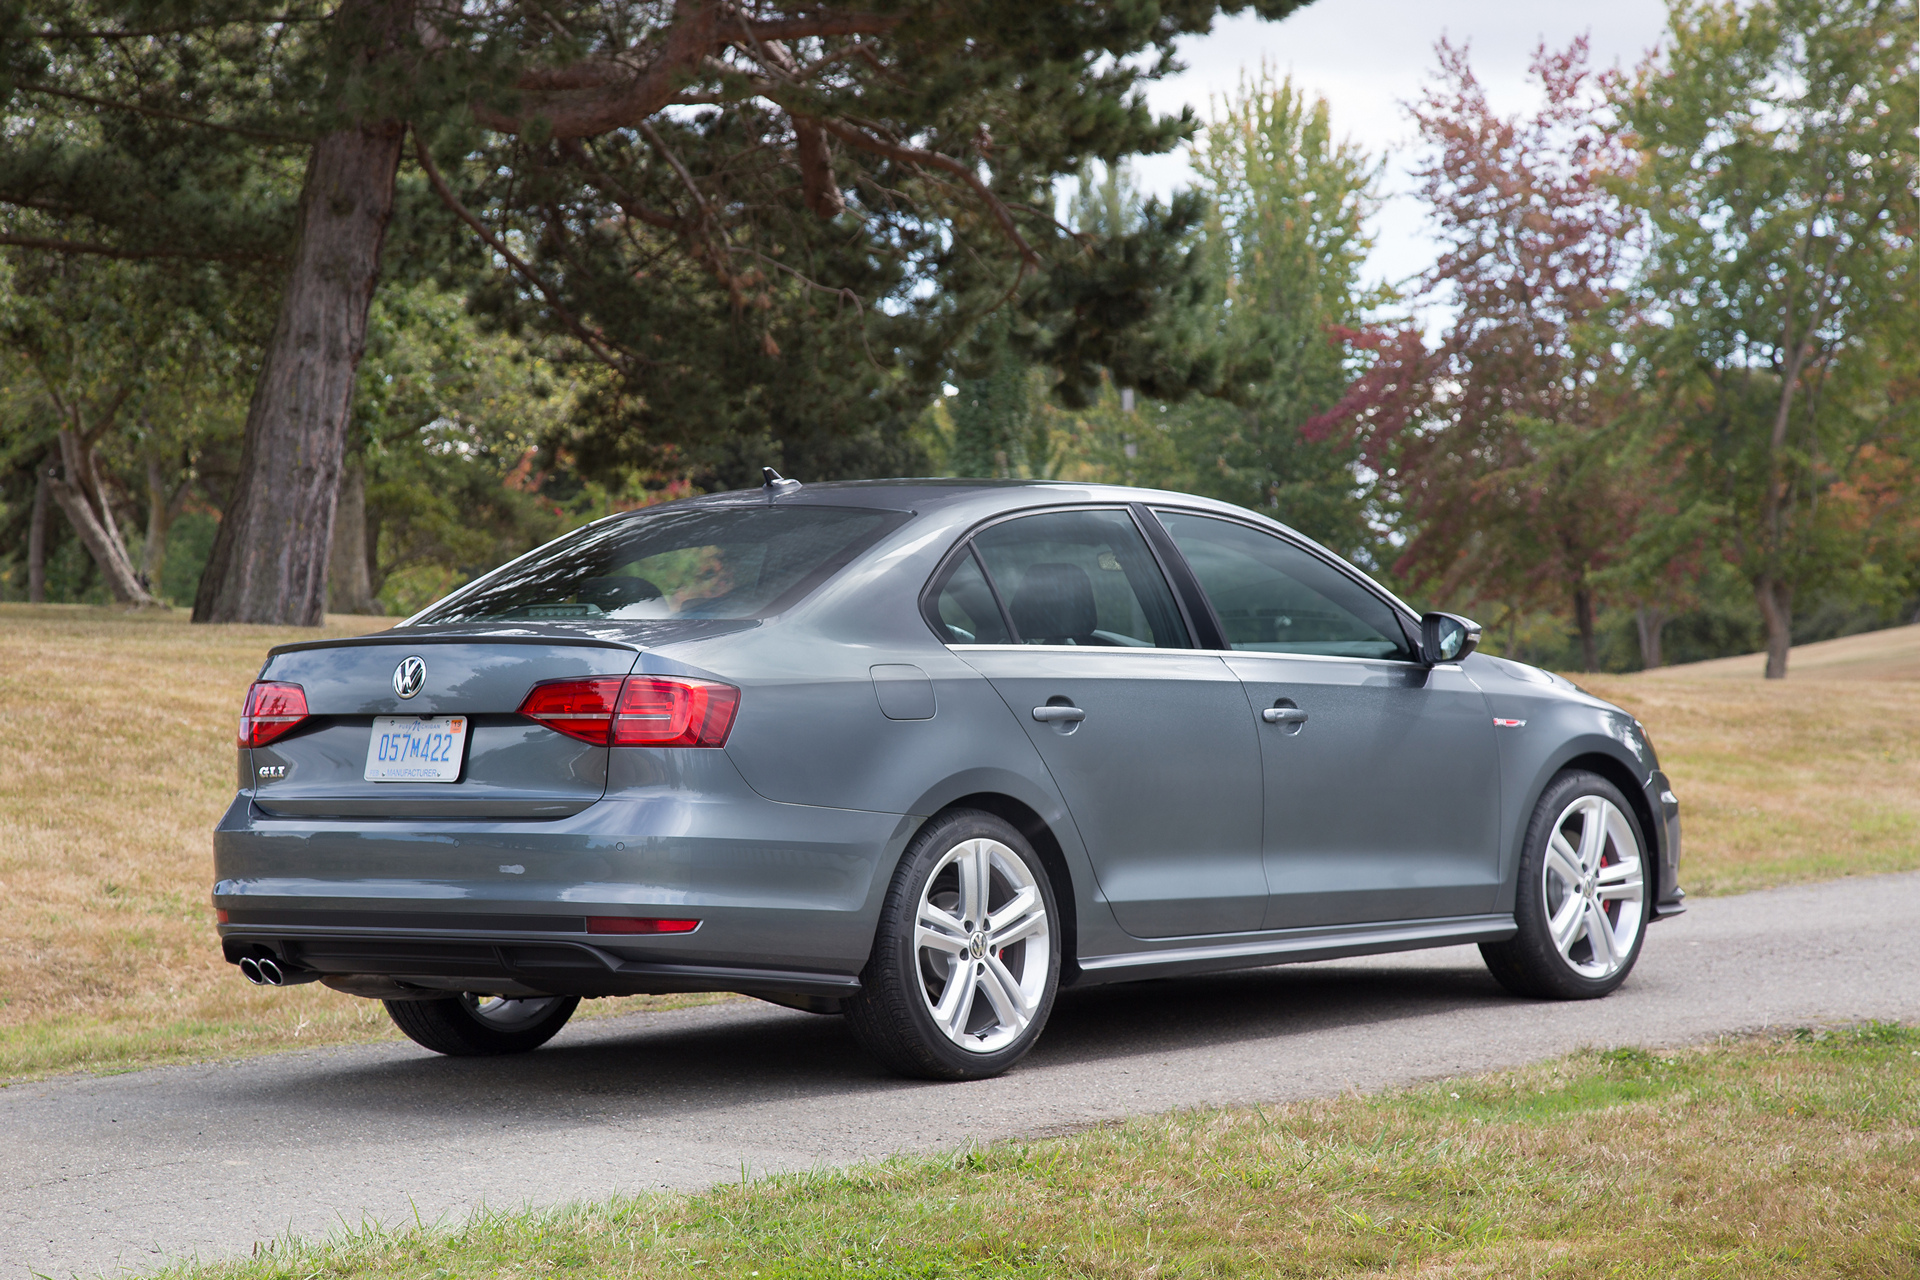 2016 Jetta Gli Review >> 2017 Volkswagen Jetta Review - Carrrs Auto Portal